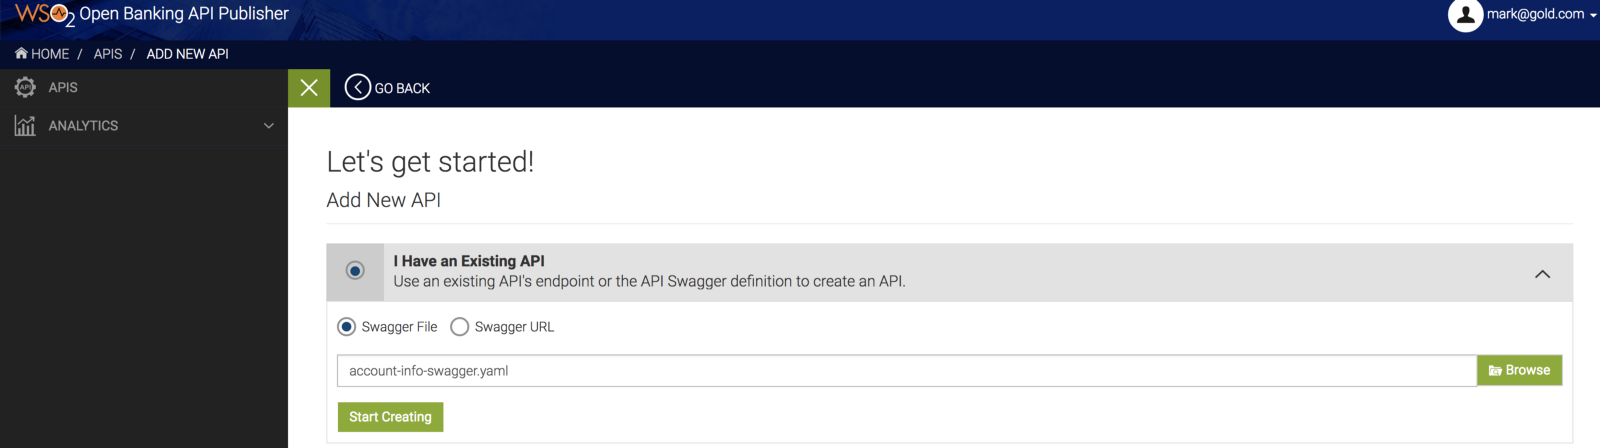 Generating REST API docs using swagger yamls for WSO2 Open